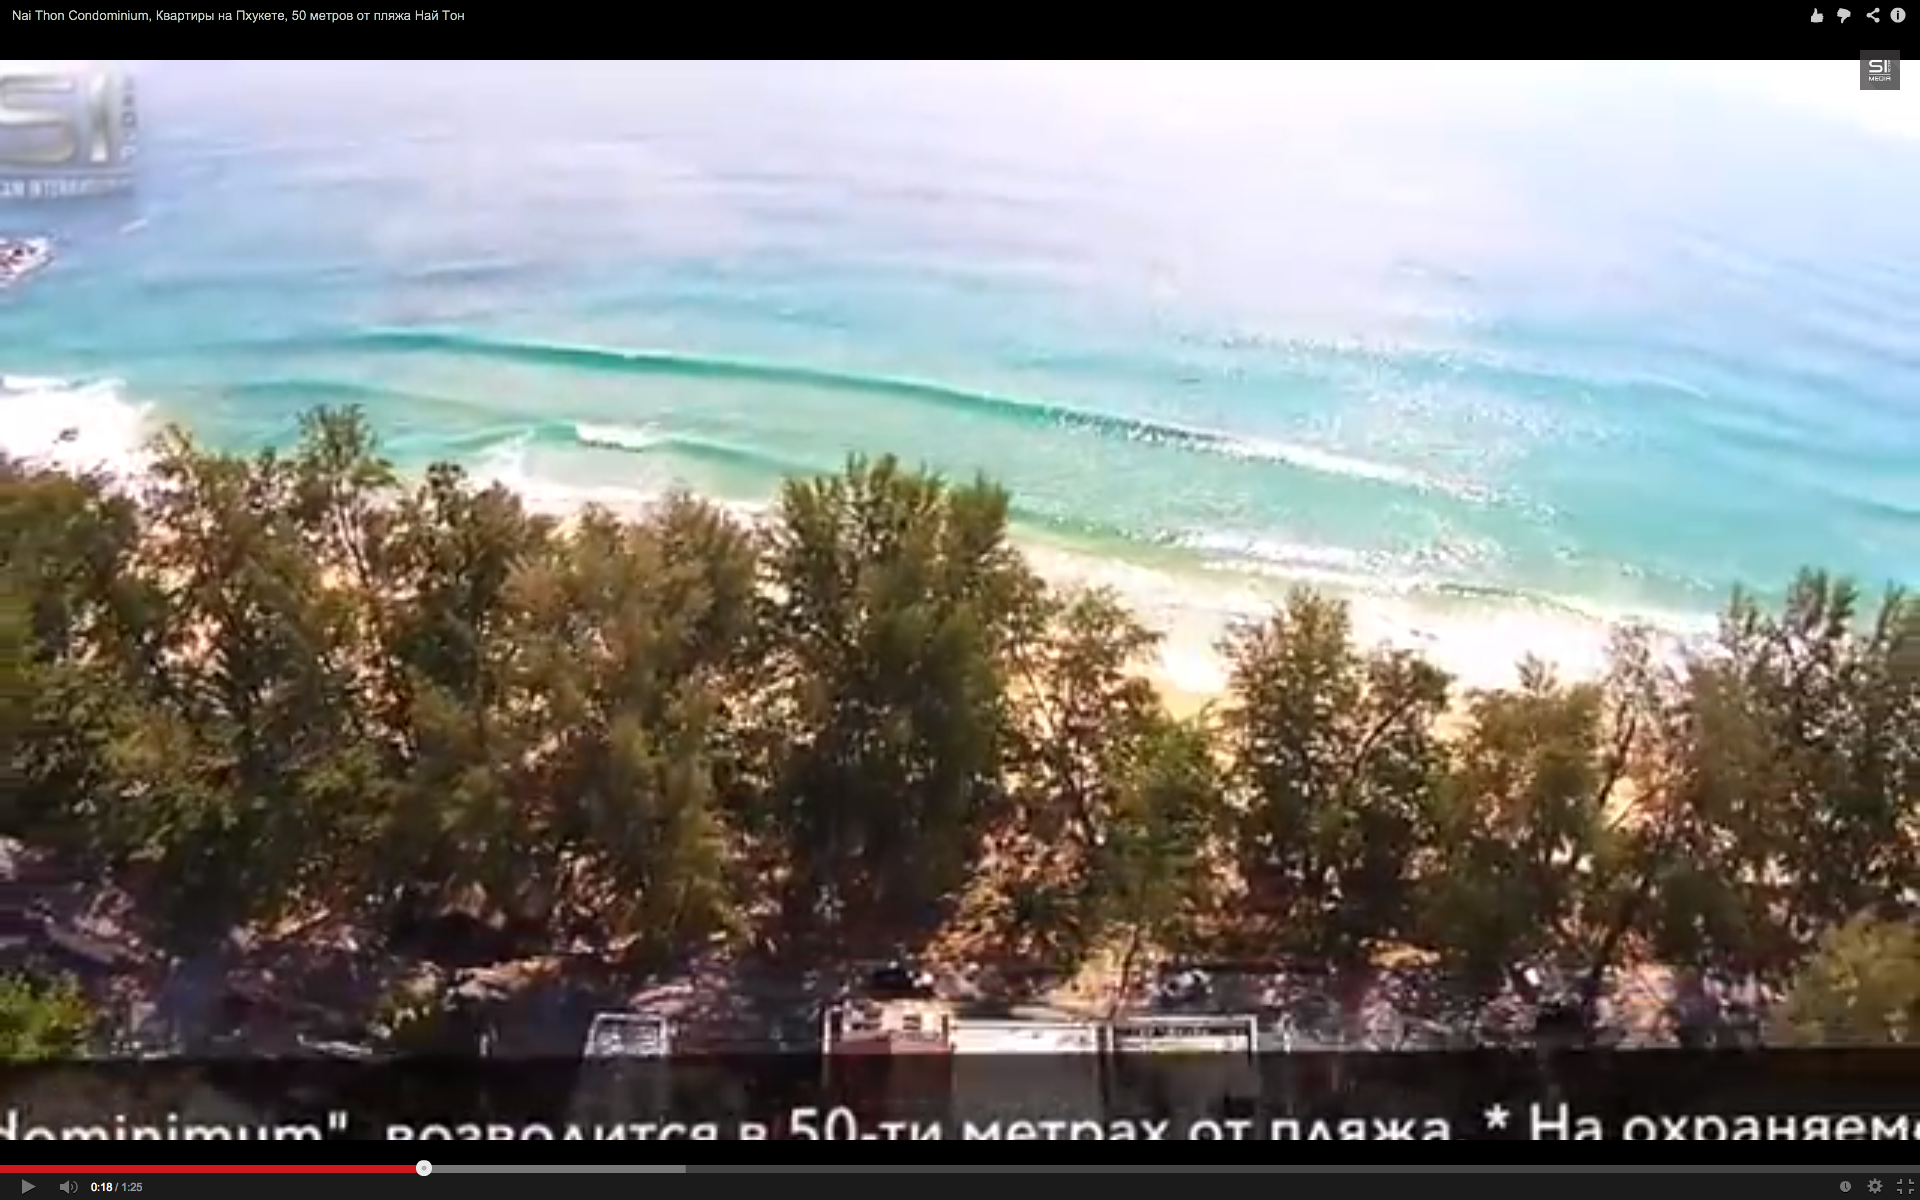 Beach Nai Thon - Video. Phuket Knighton